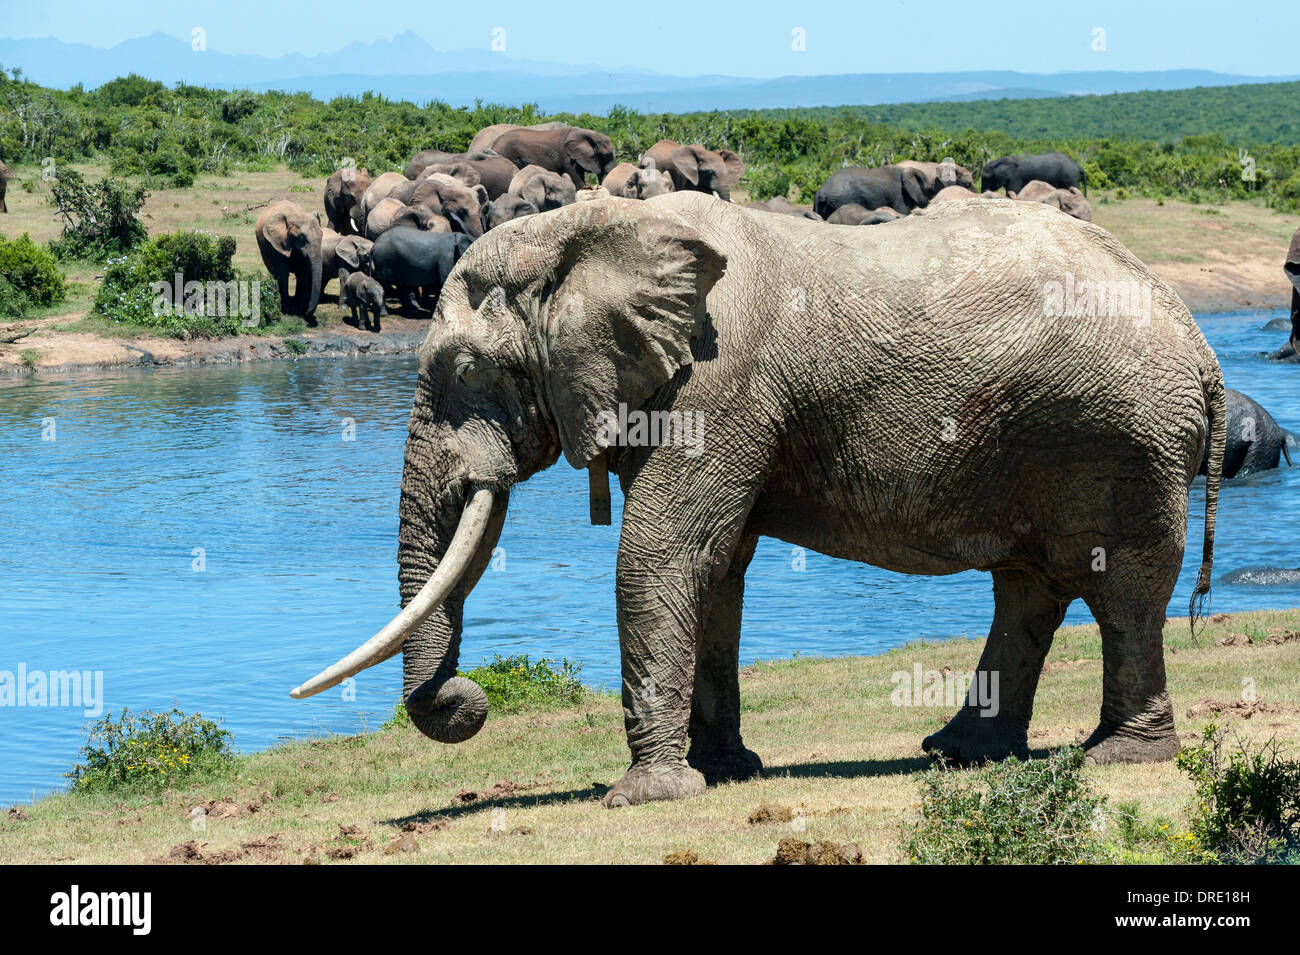 Elephant bull (Loxodonta africana) with tracking collar at Gwarrie Pan waterhole, Addo Elephant Park, Eastern Cape, South Africa - Stock Image